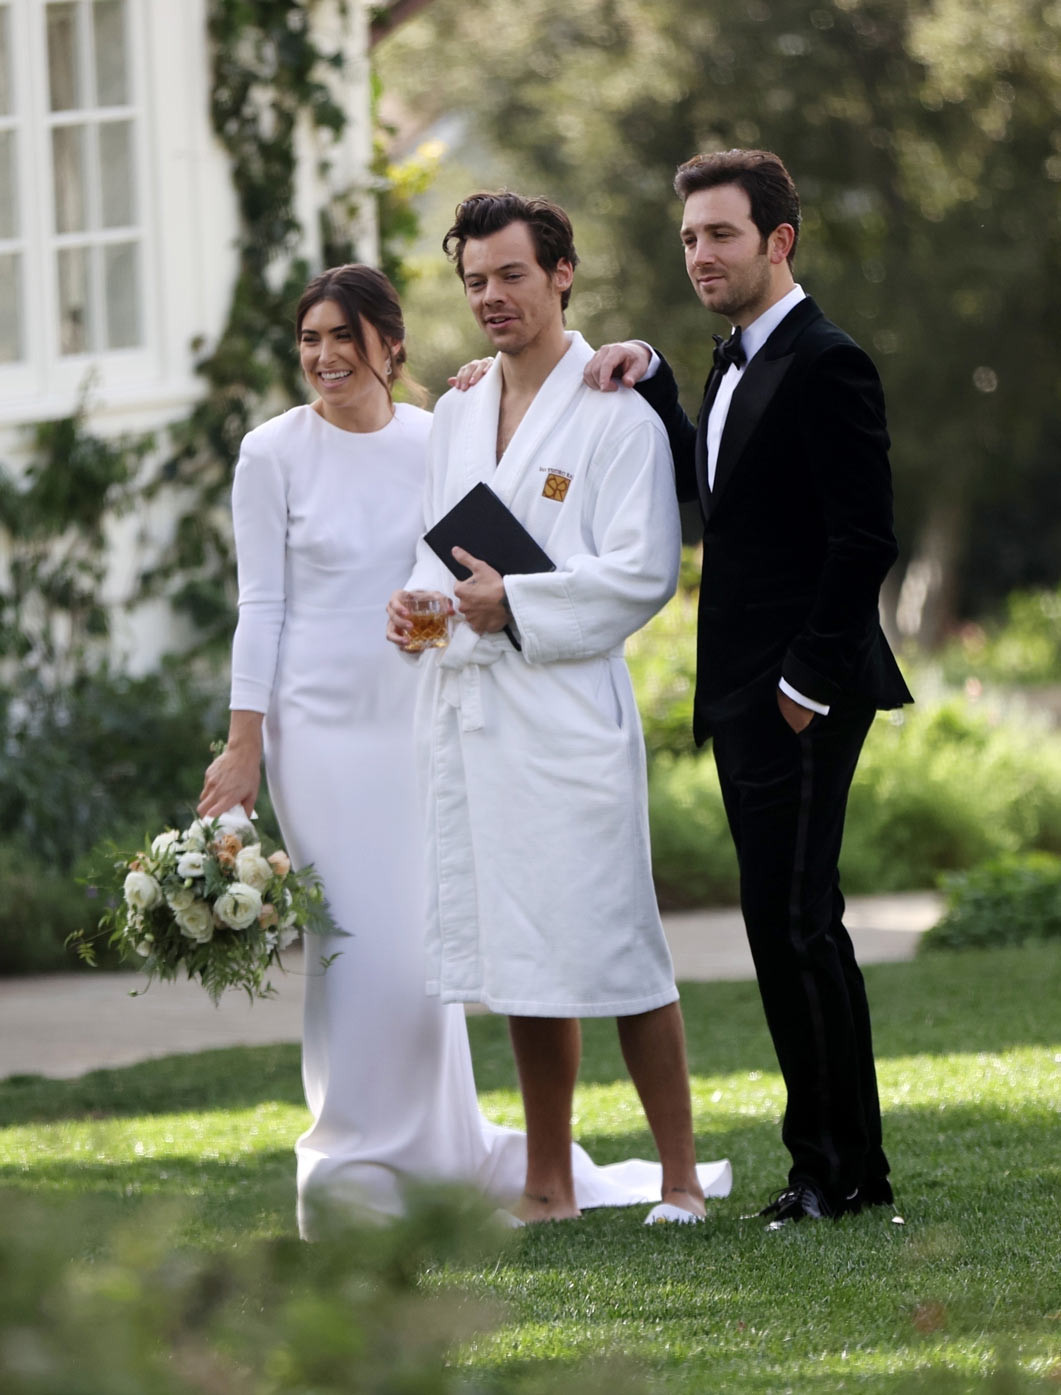 Harry styles pagesix wedding officiant robe